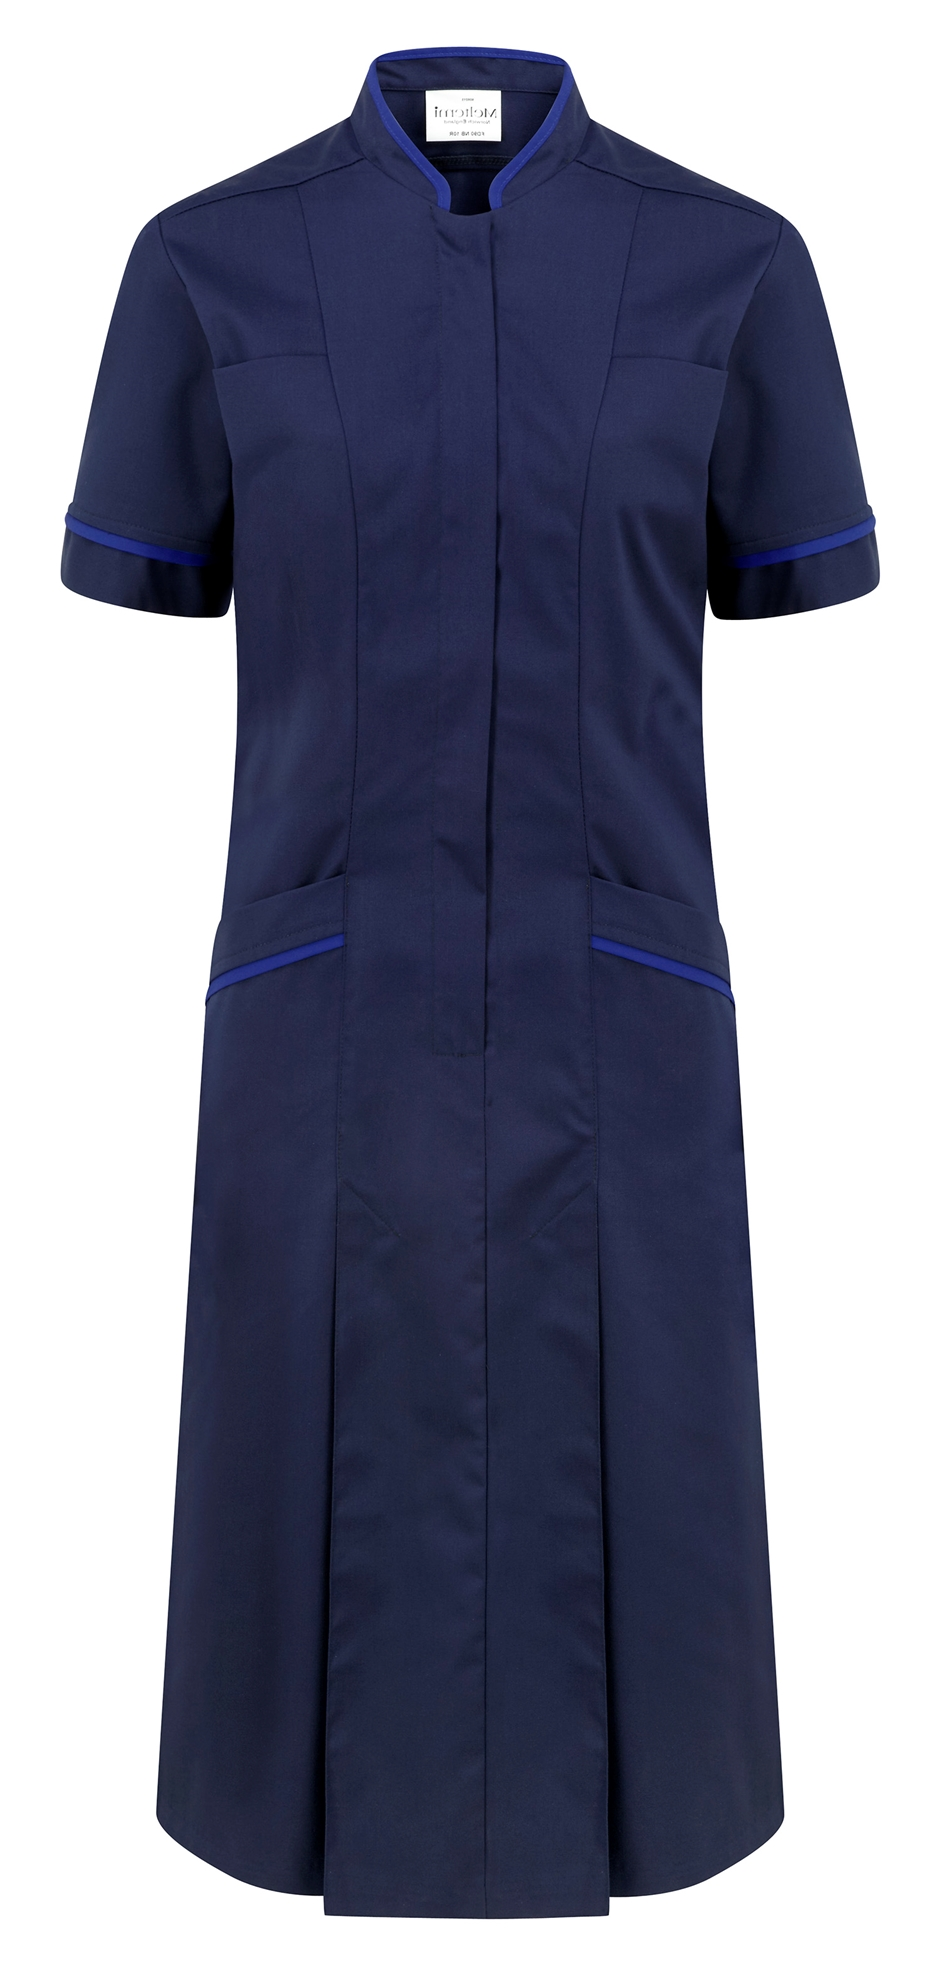 Picture of Professional Dress - Navy/Royal Blue